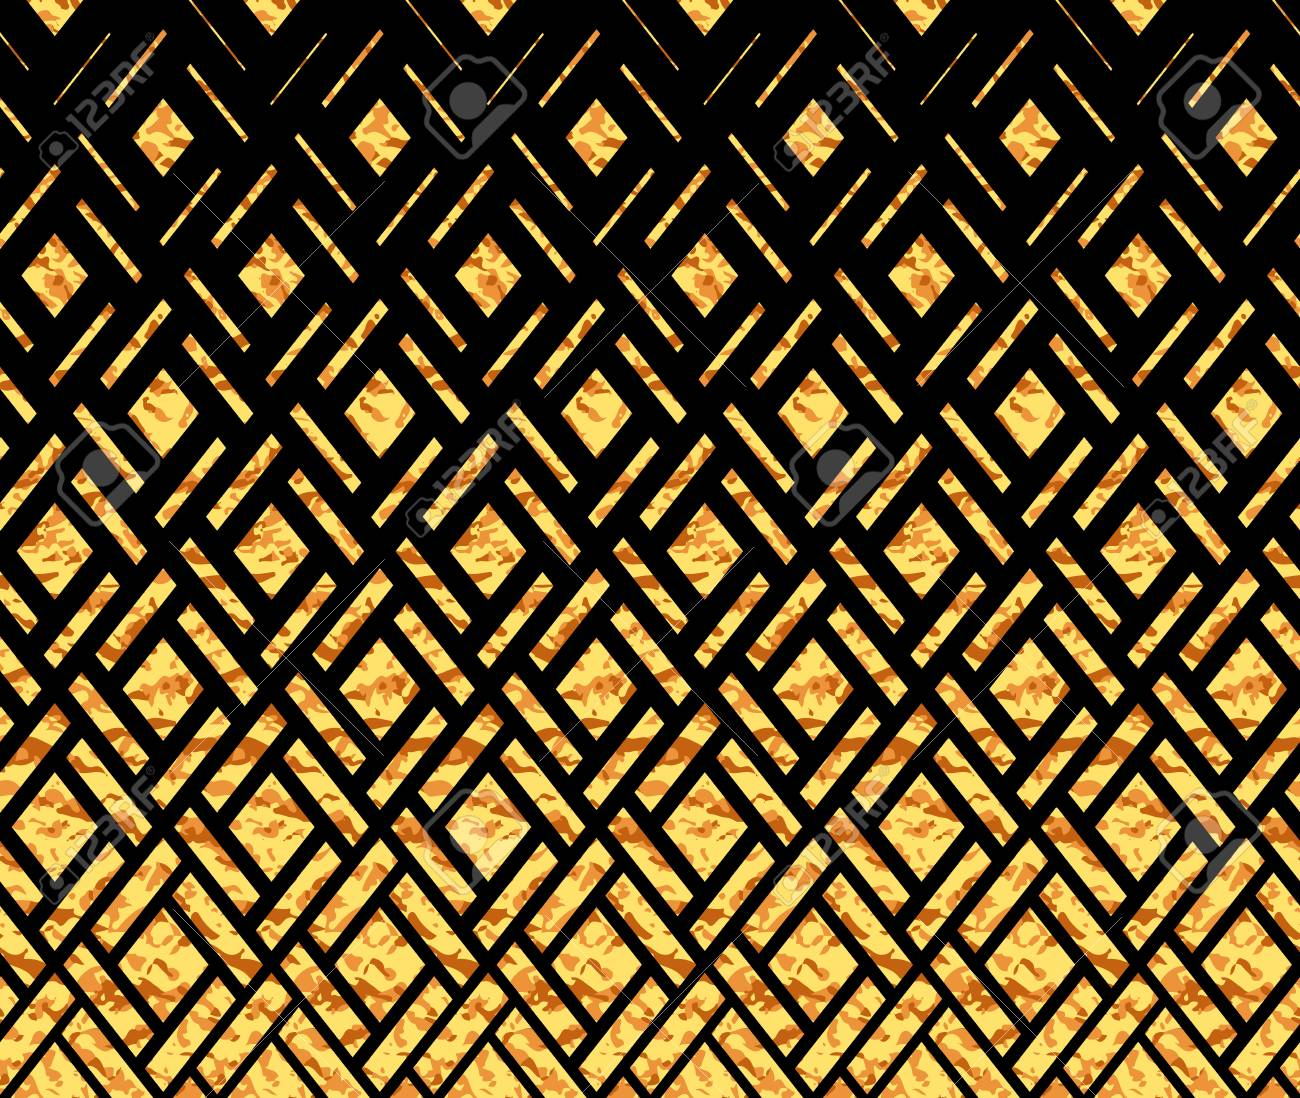 Abstract Geometric Pattern Background Black And Gold Halftone